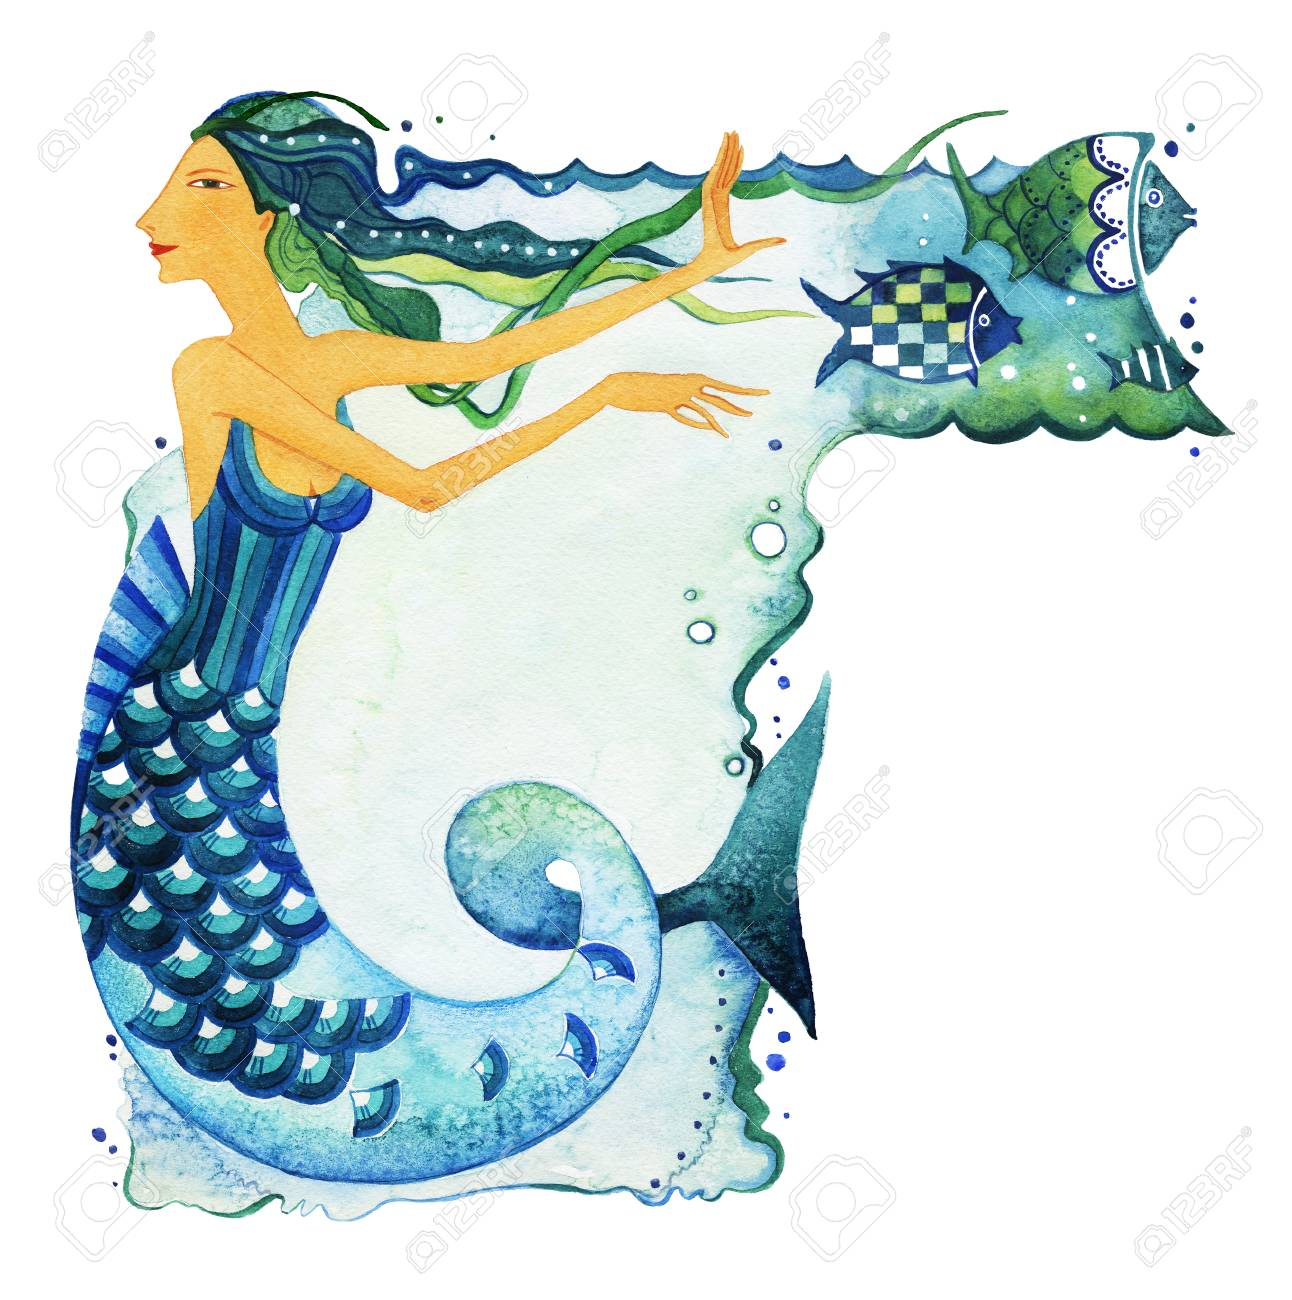 Mermaid As A Symbol Of The Sign Zodiac Pisces Surrounded By Fish